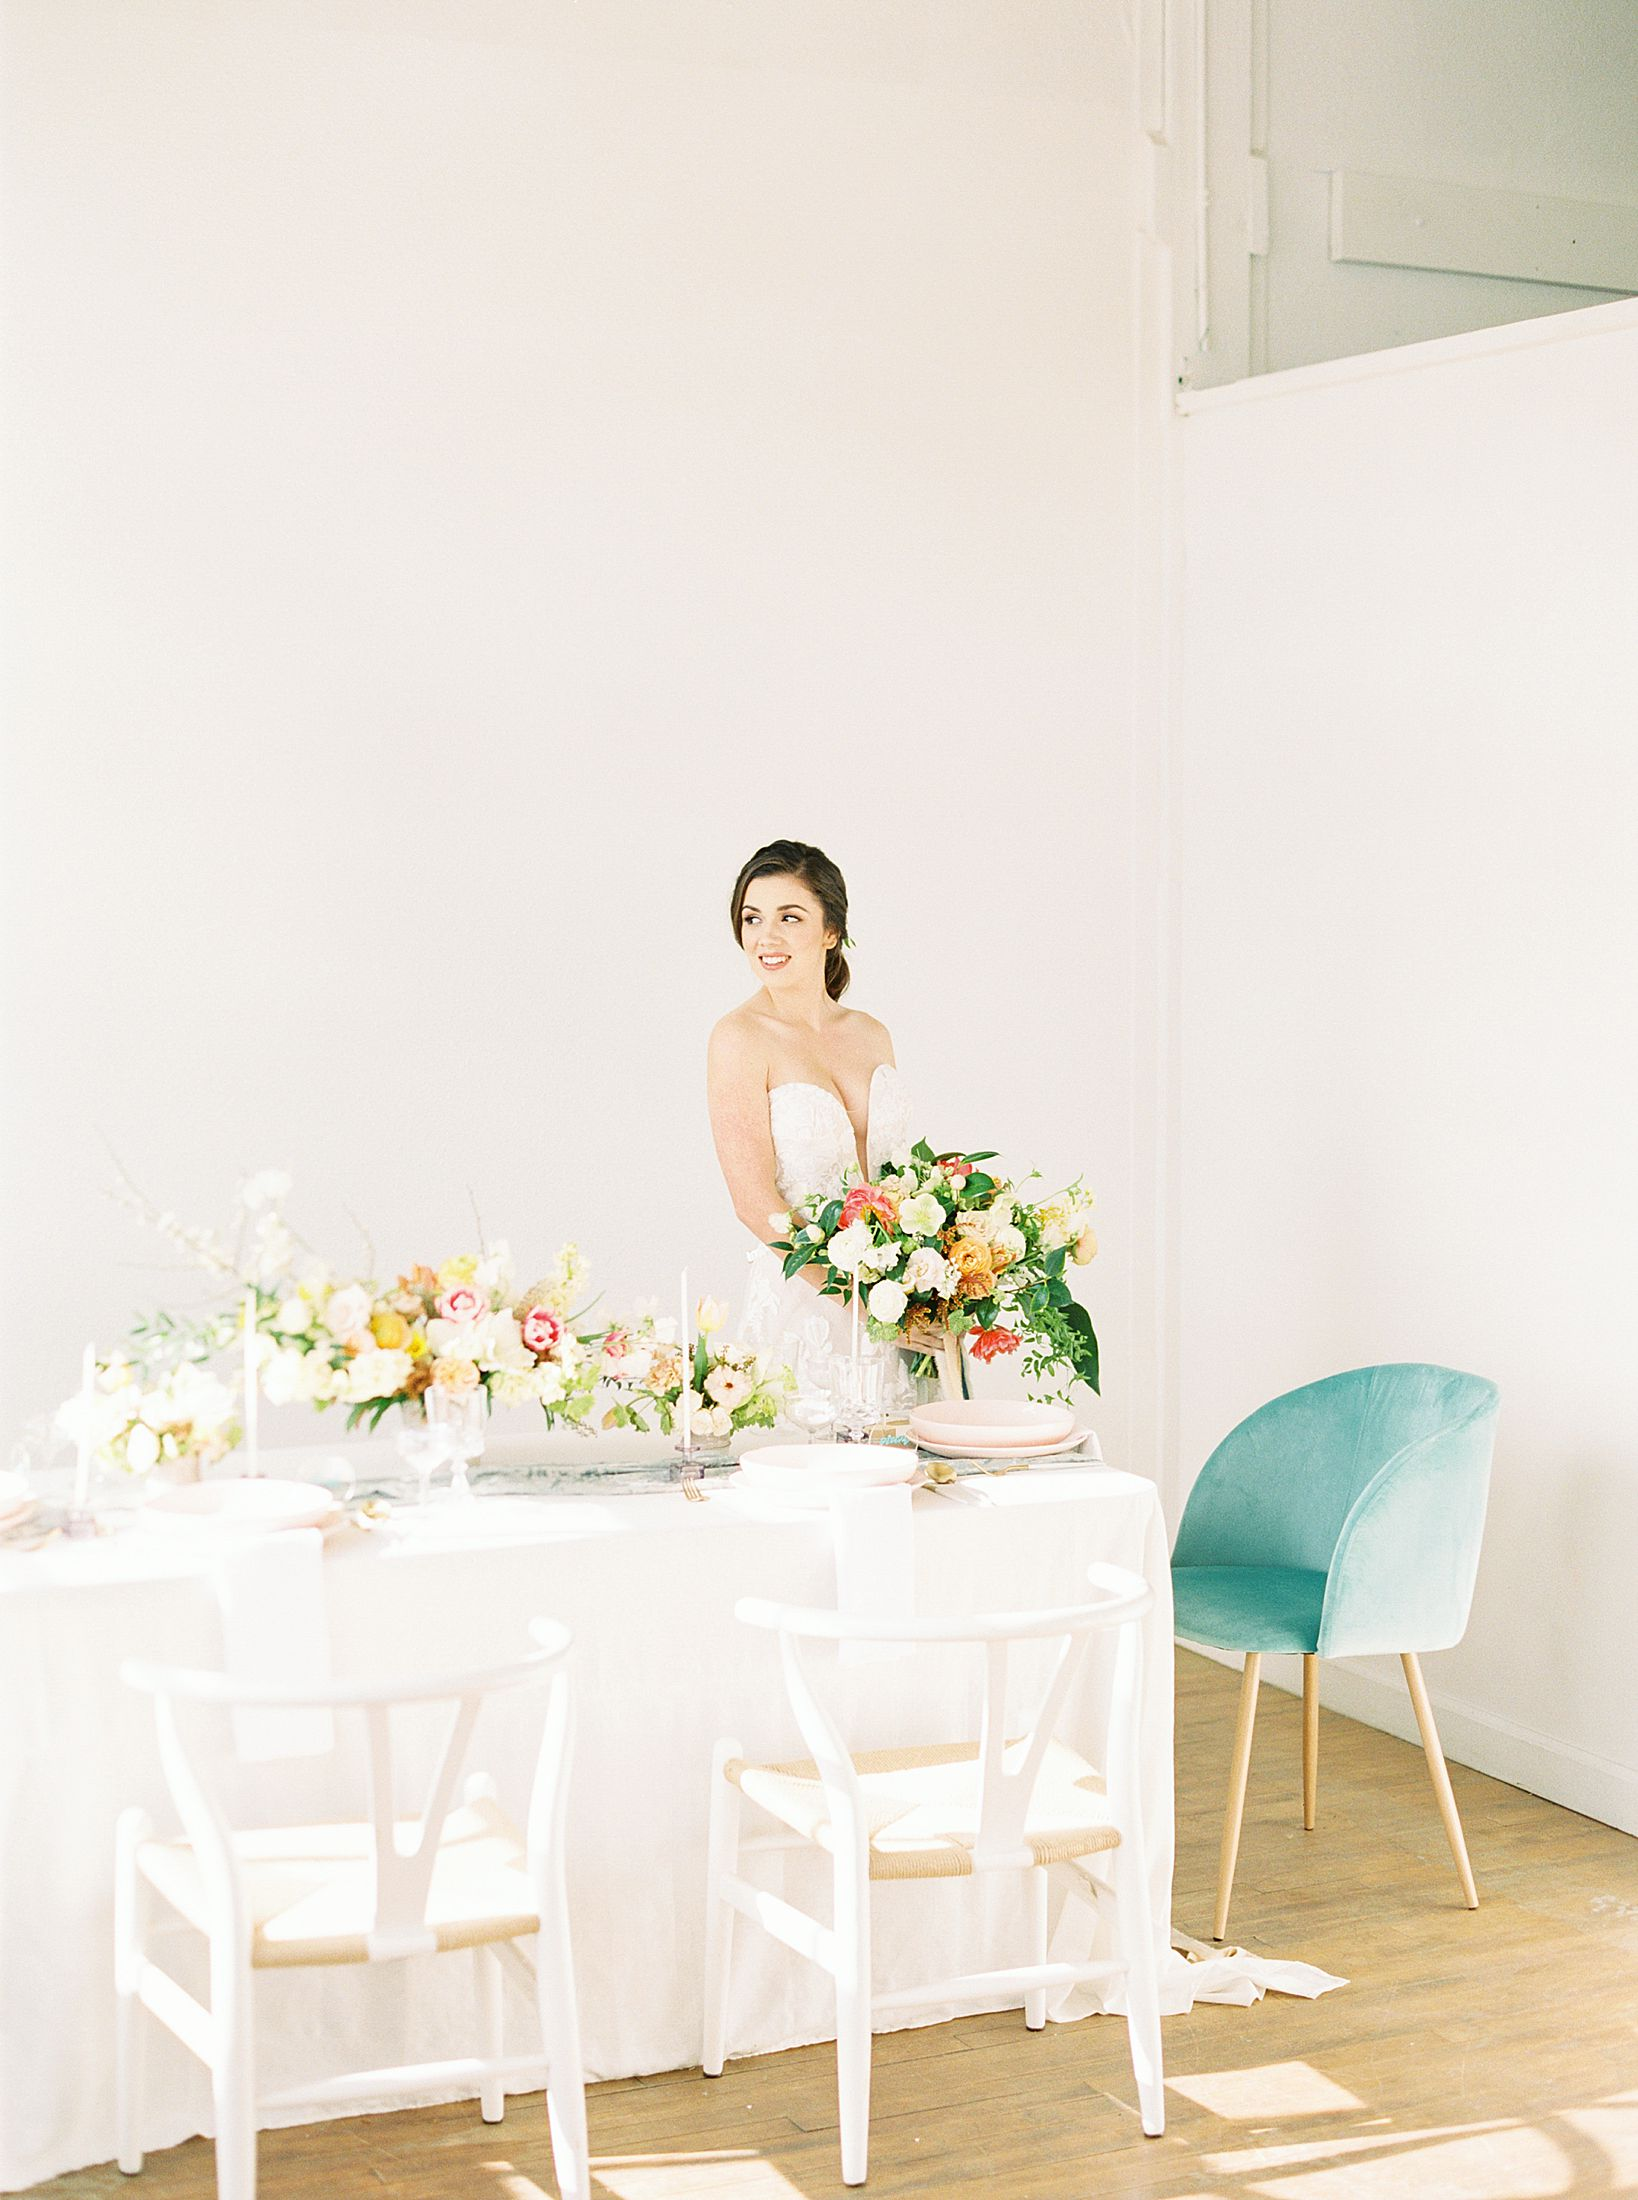 Bay Area Spring Wedding Inspiration - Ashley Baumgartner - Inspired By This - Party Crush Studio and Lens of Lenox Videography - Bay Area Wedding Photography_0056.jpg